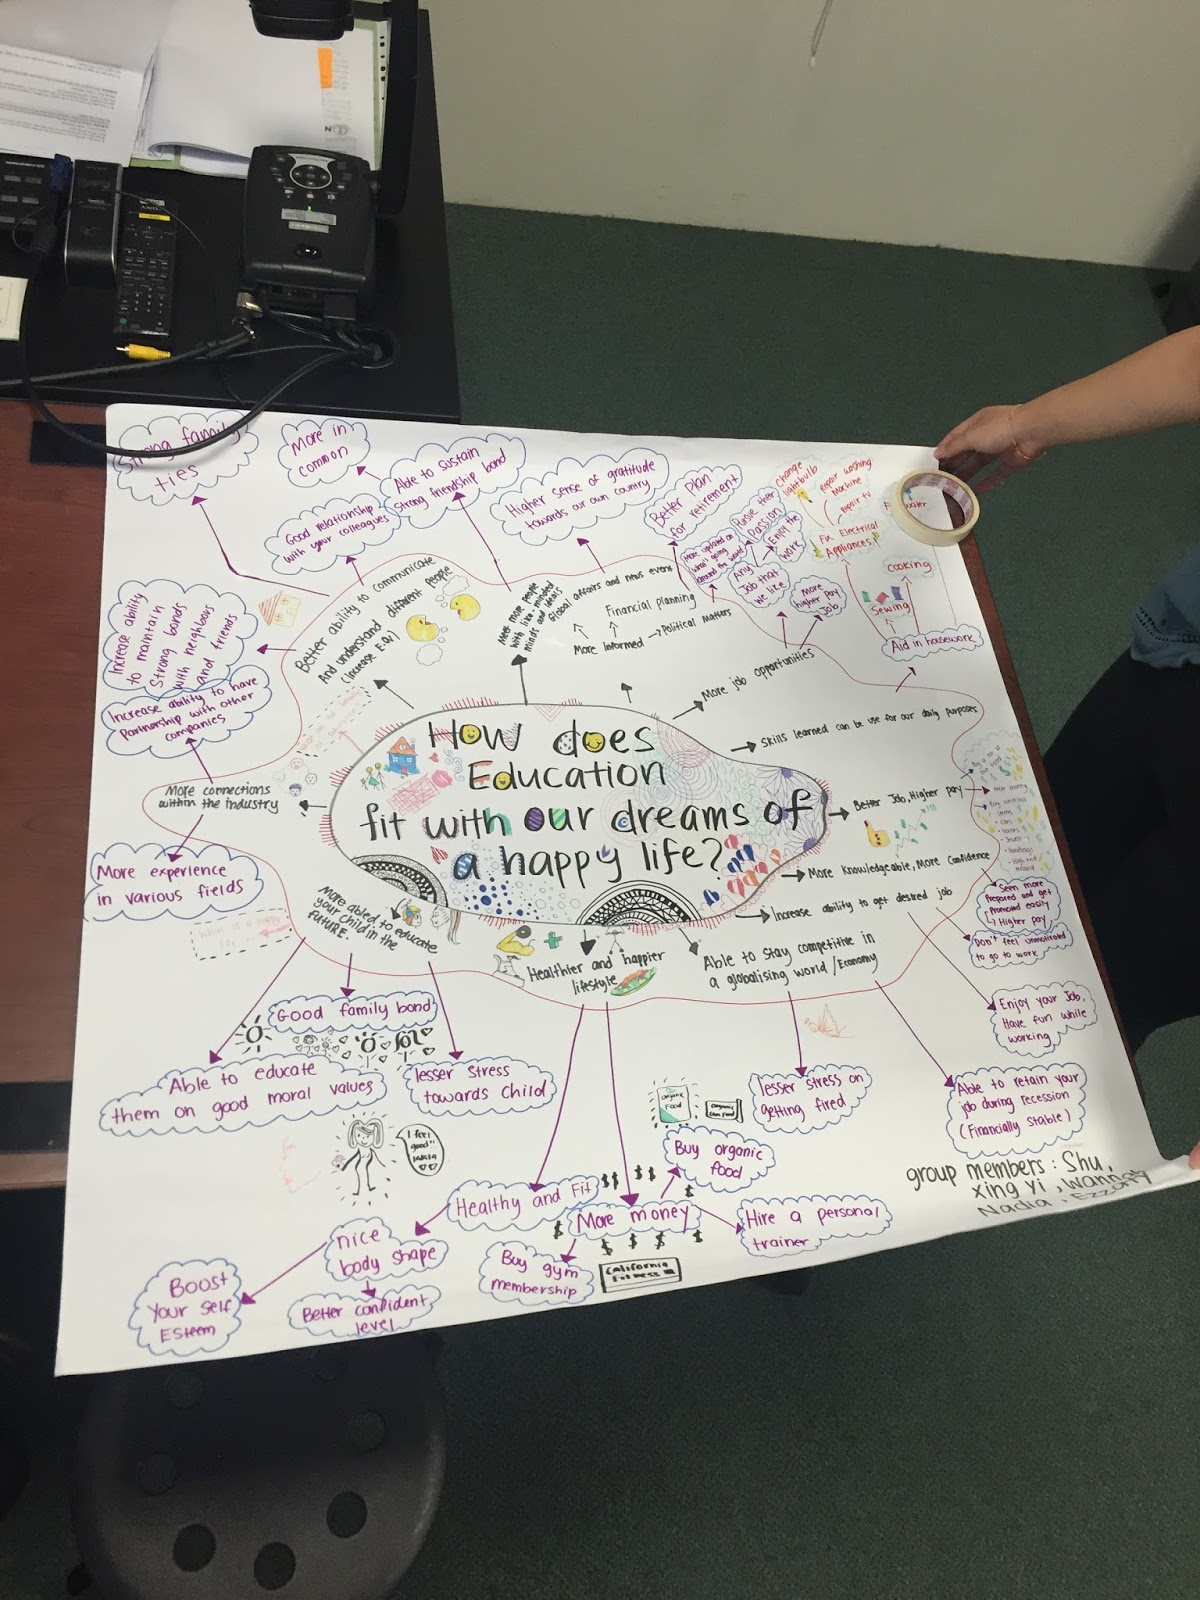 we were then given a group assignment to make a mind map on mahjong paper the main idea of this mind map would be the question of how does education fit